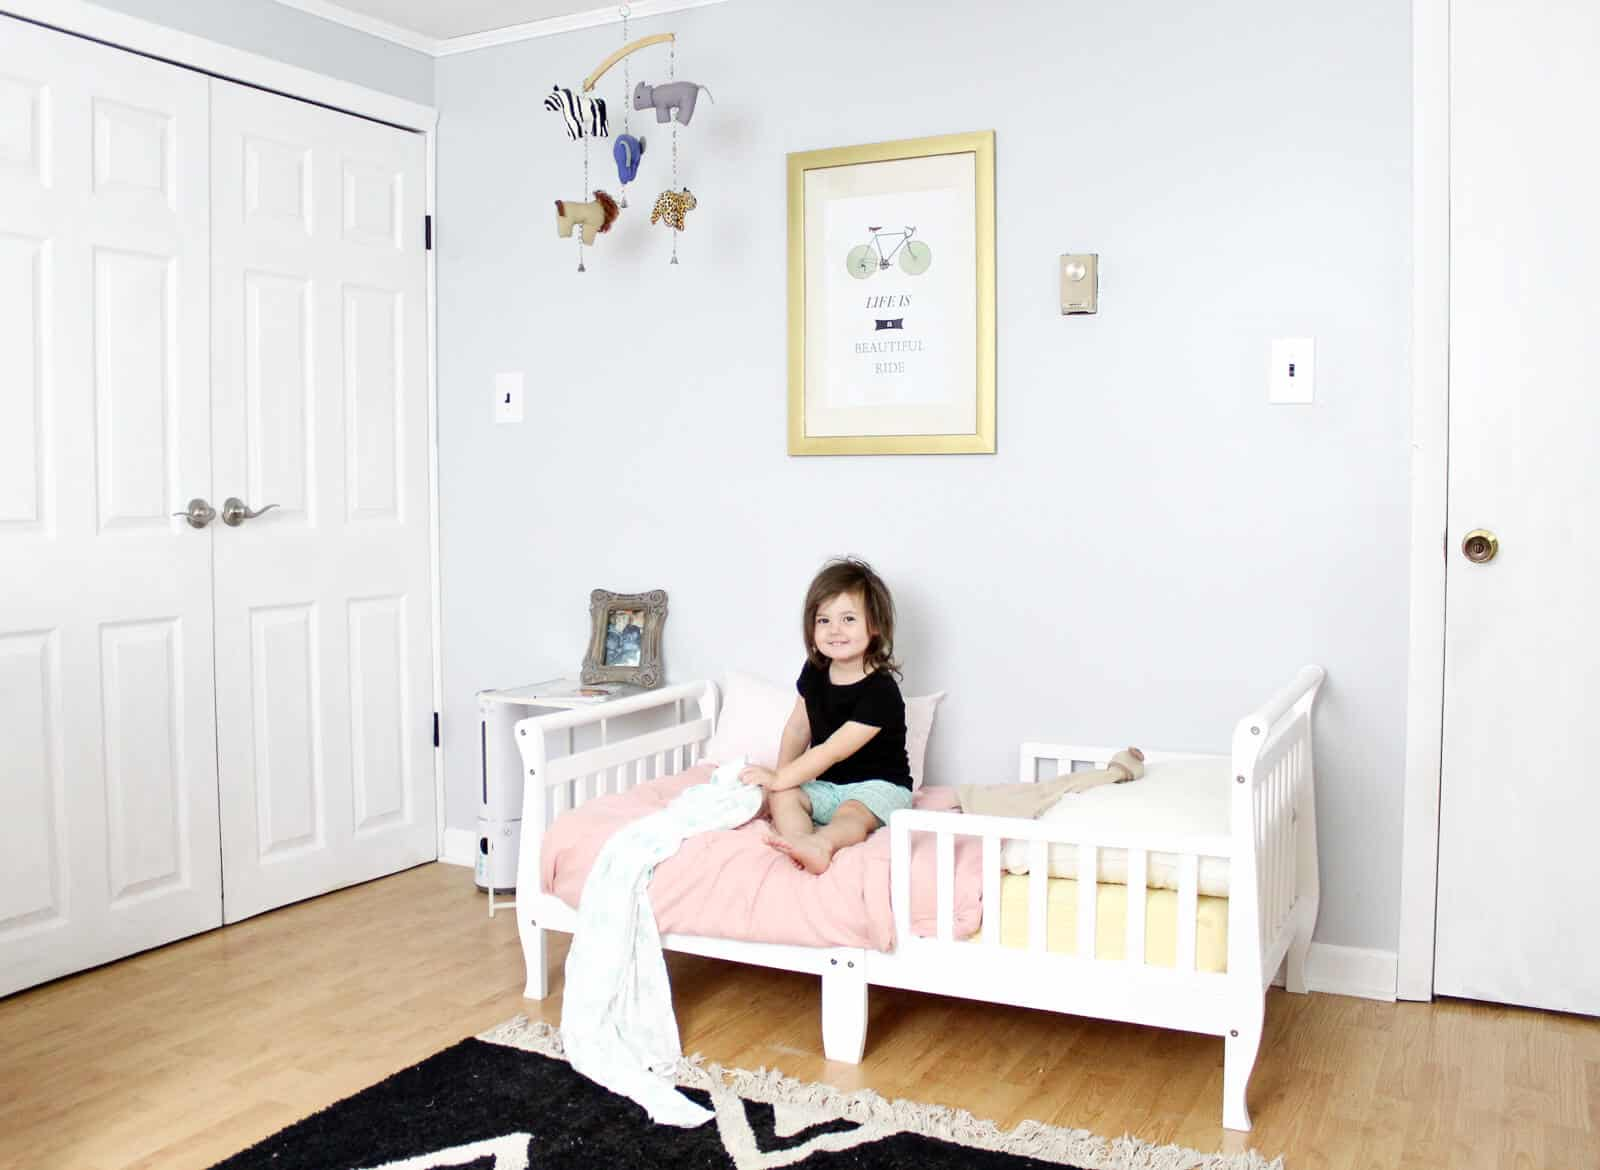 A sweet and minimal modern + classic baby girl nursery (shared infant & toddler room) with easy decor ideas. | Nursery Themes | Nursery Decor | #nursery #babynursery #babygirlnursery #toddlerroom #kidsroom